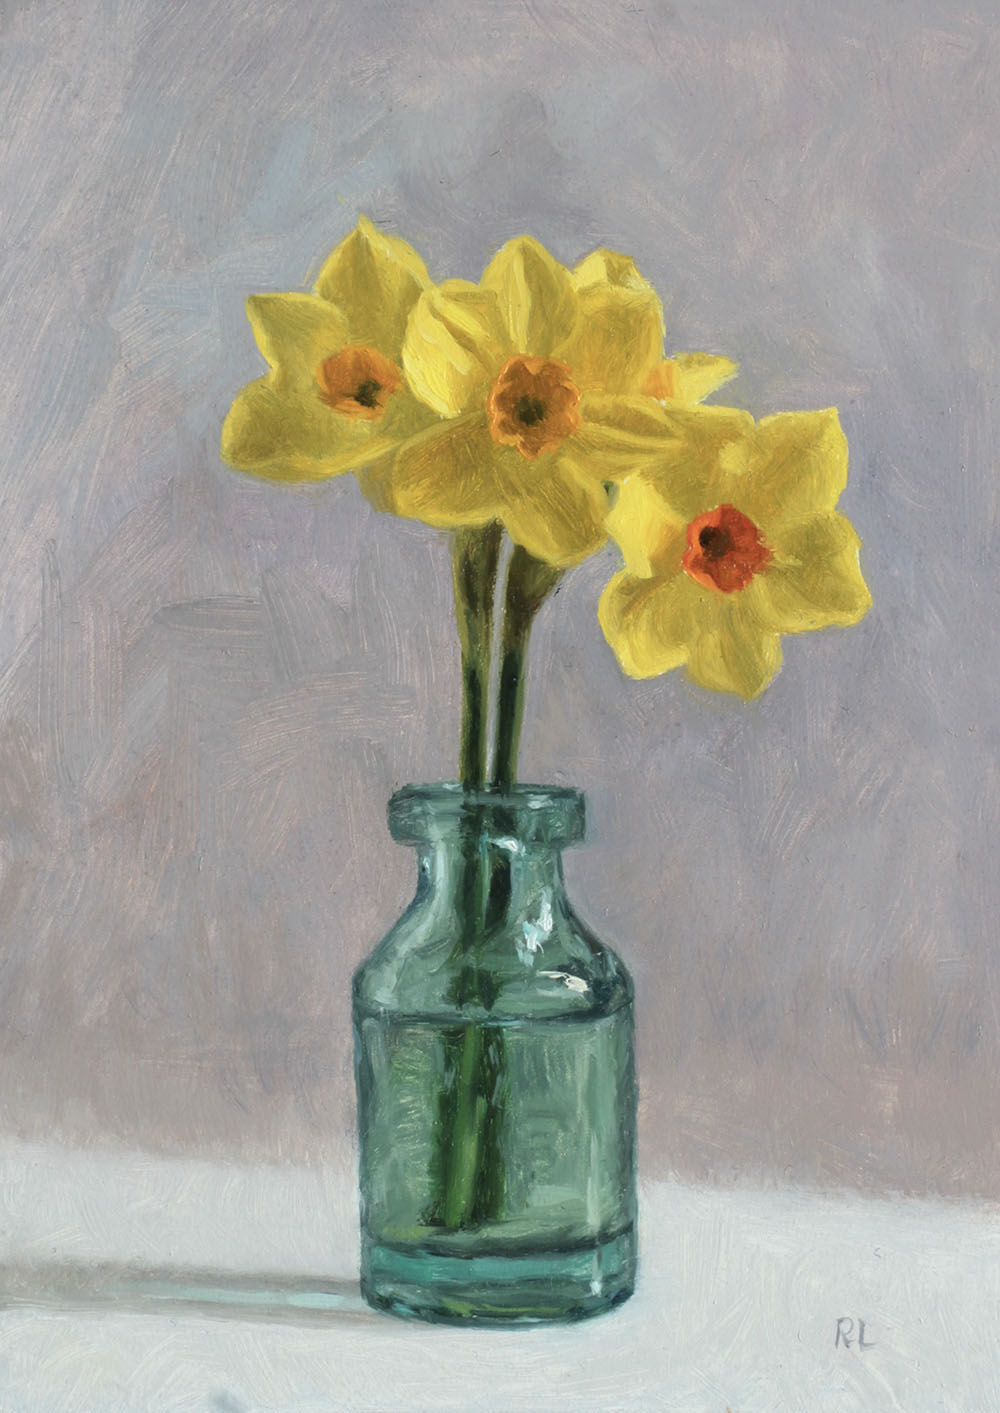 Narcissi in a Glass Bottle